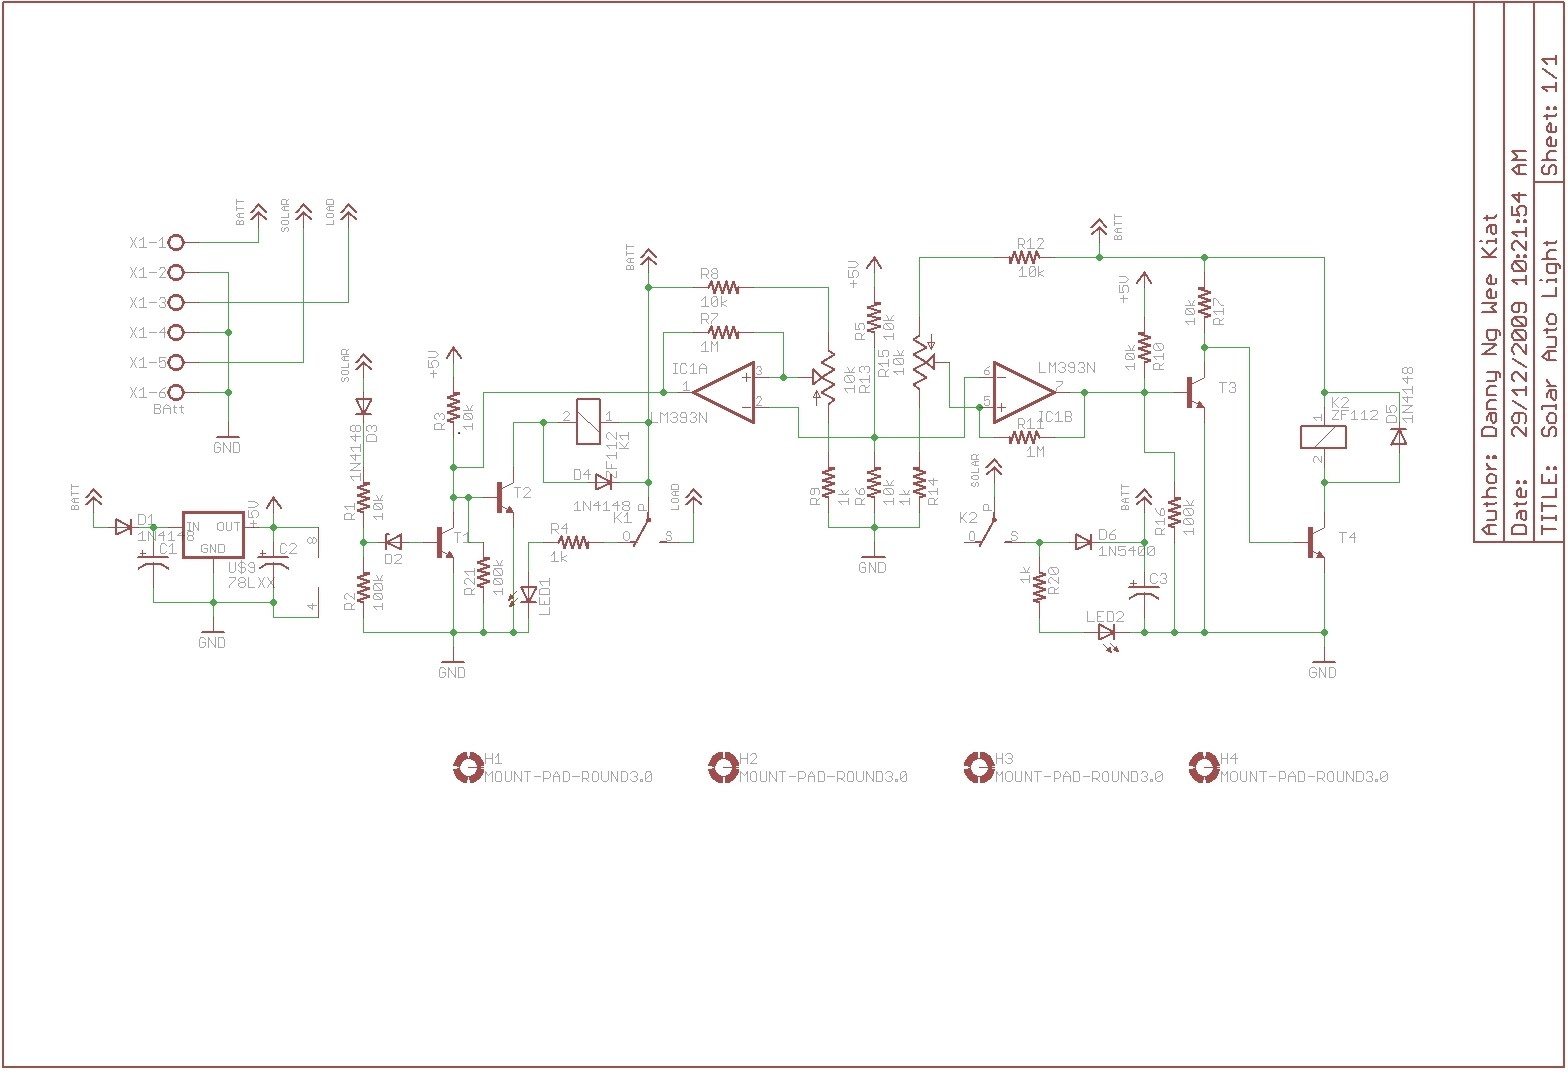 Enmcu Projects Circuit For Electronics Guides And Site Info